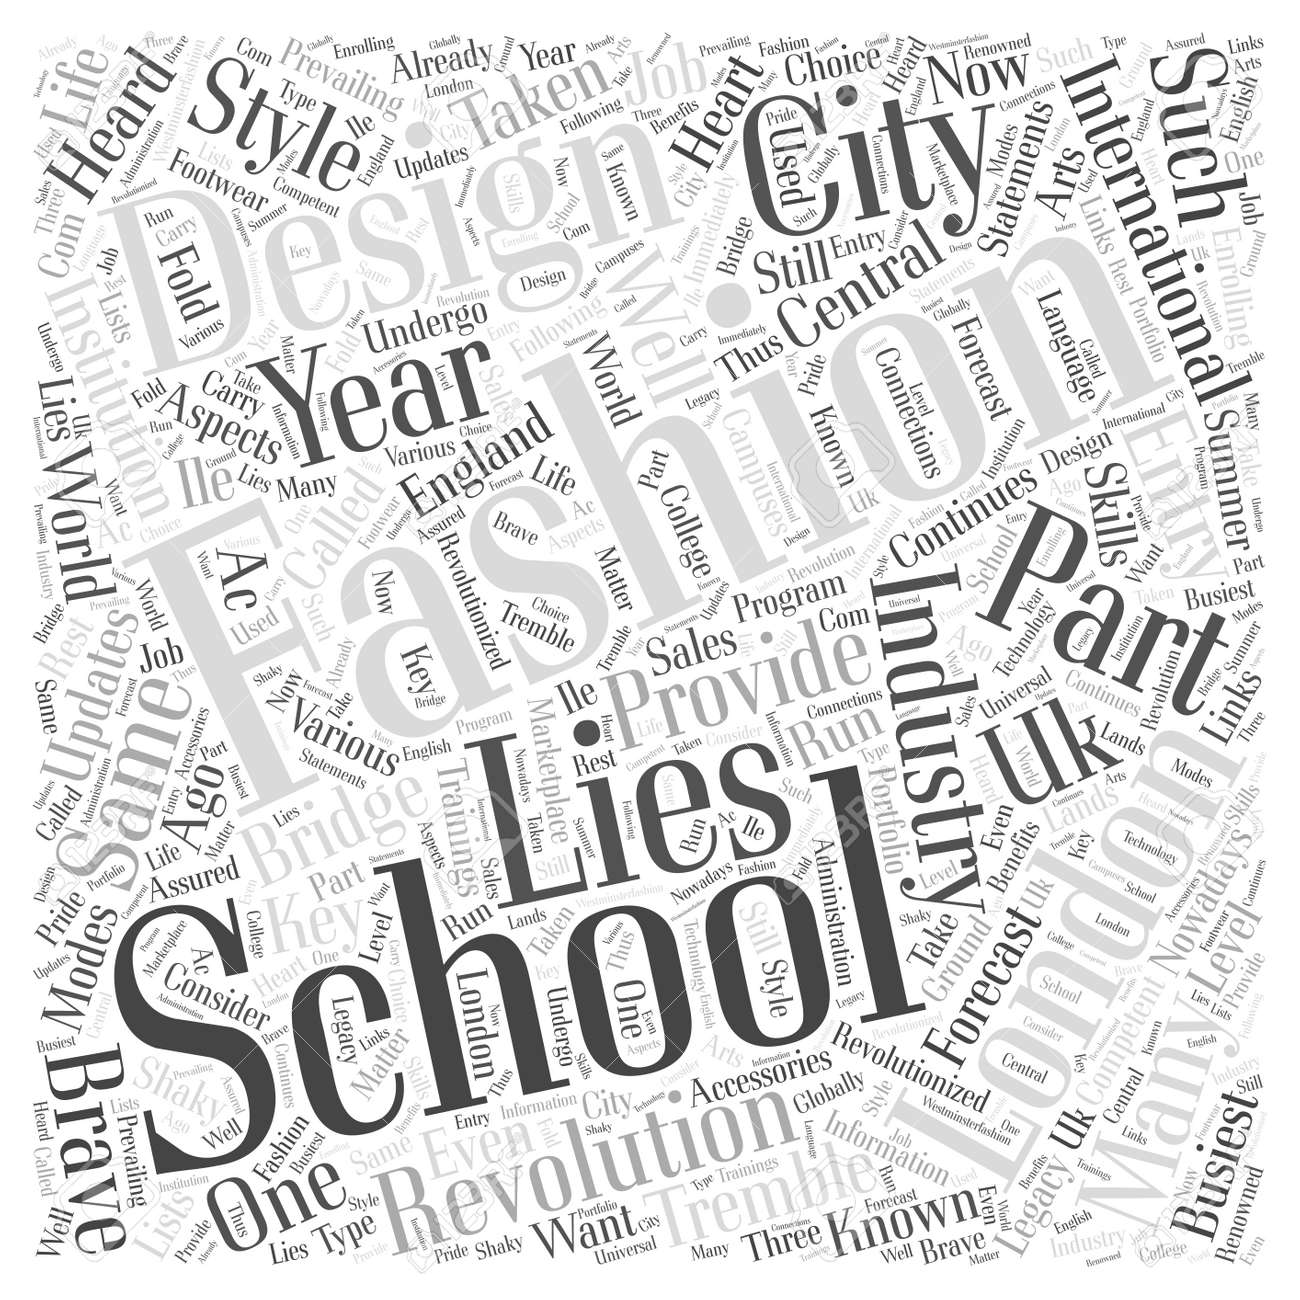 London Fashion Design Schools Word Cloud Concept Royalty Free Cliparts Vectors And Stock Illustration Image 74203380